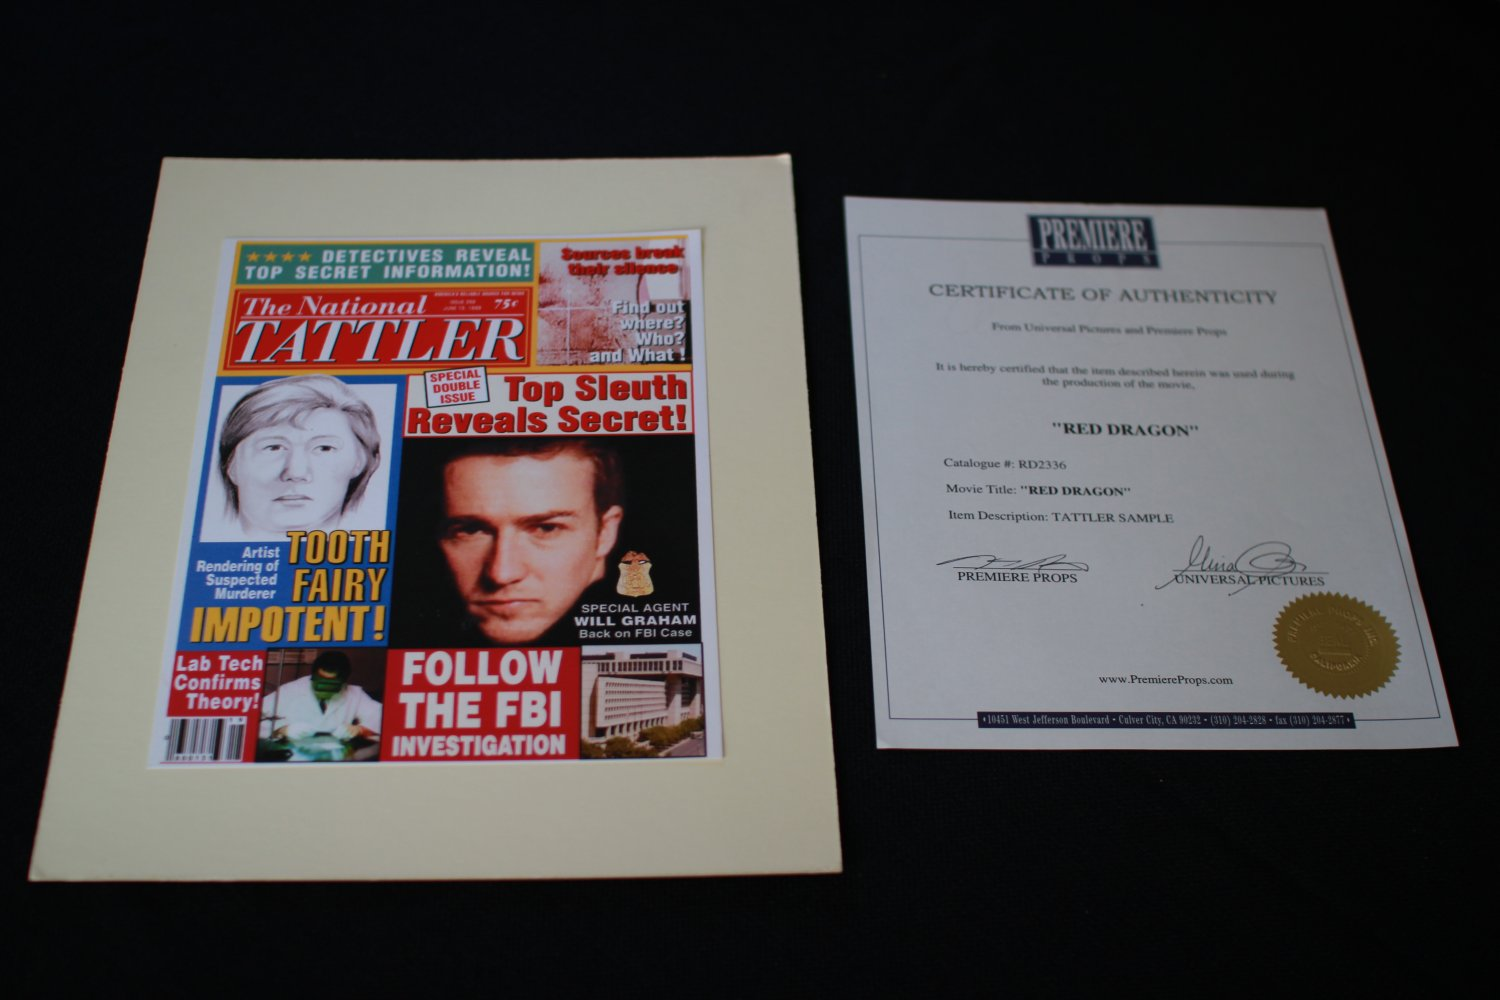 Red Dragon TATTLER Sample with ED Norton on it